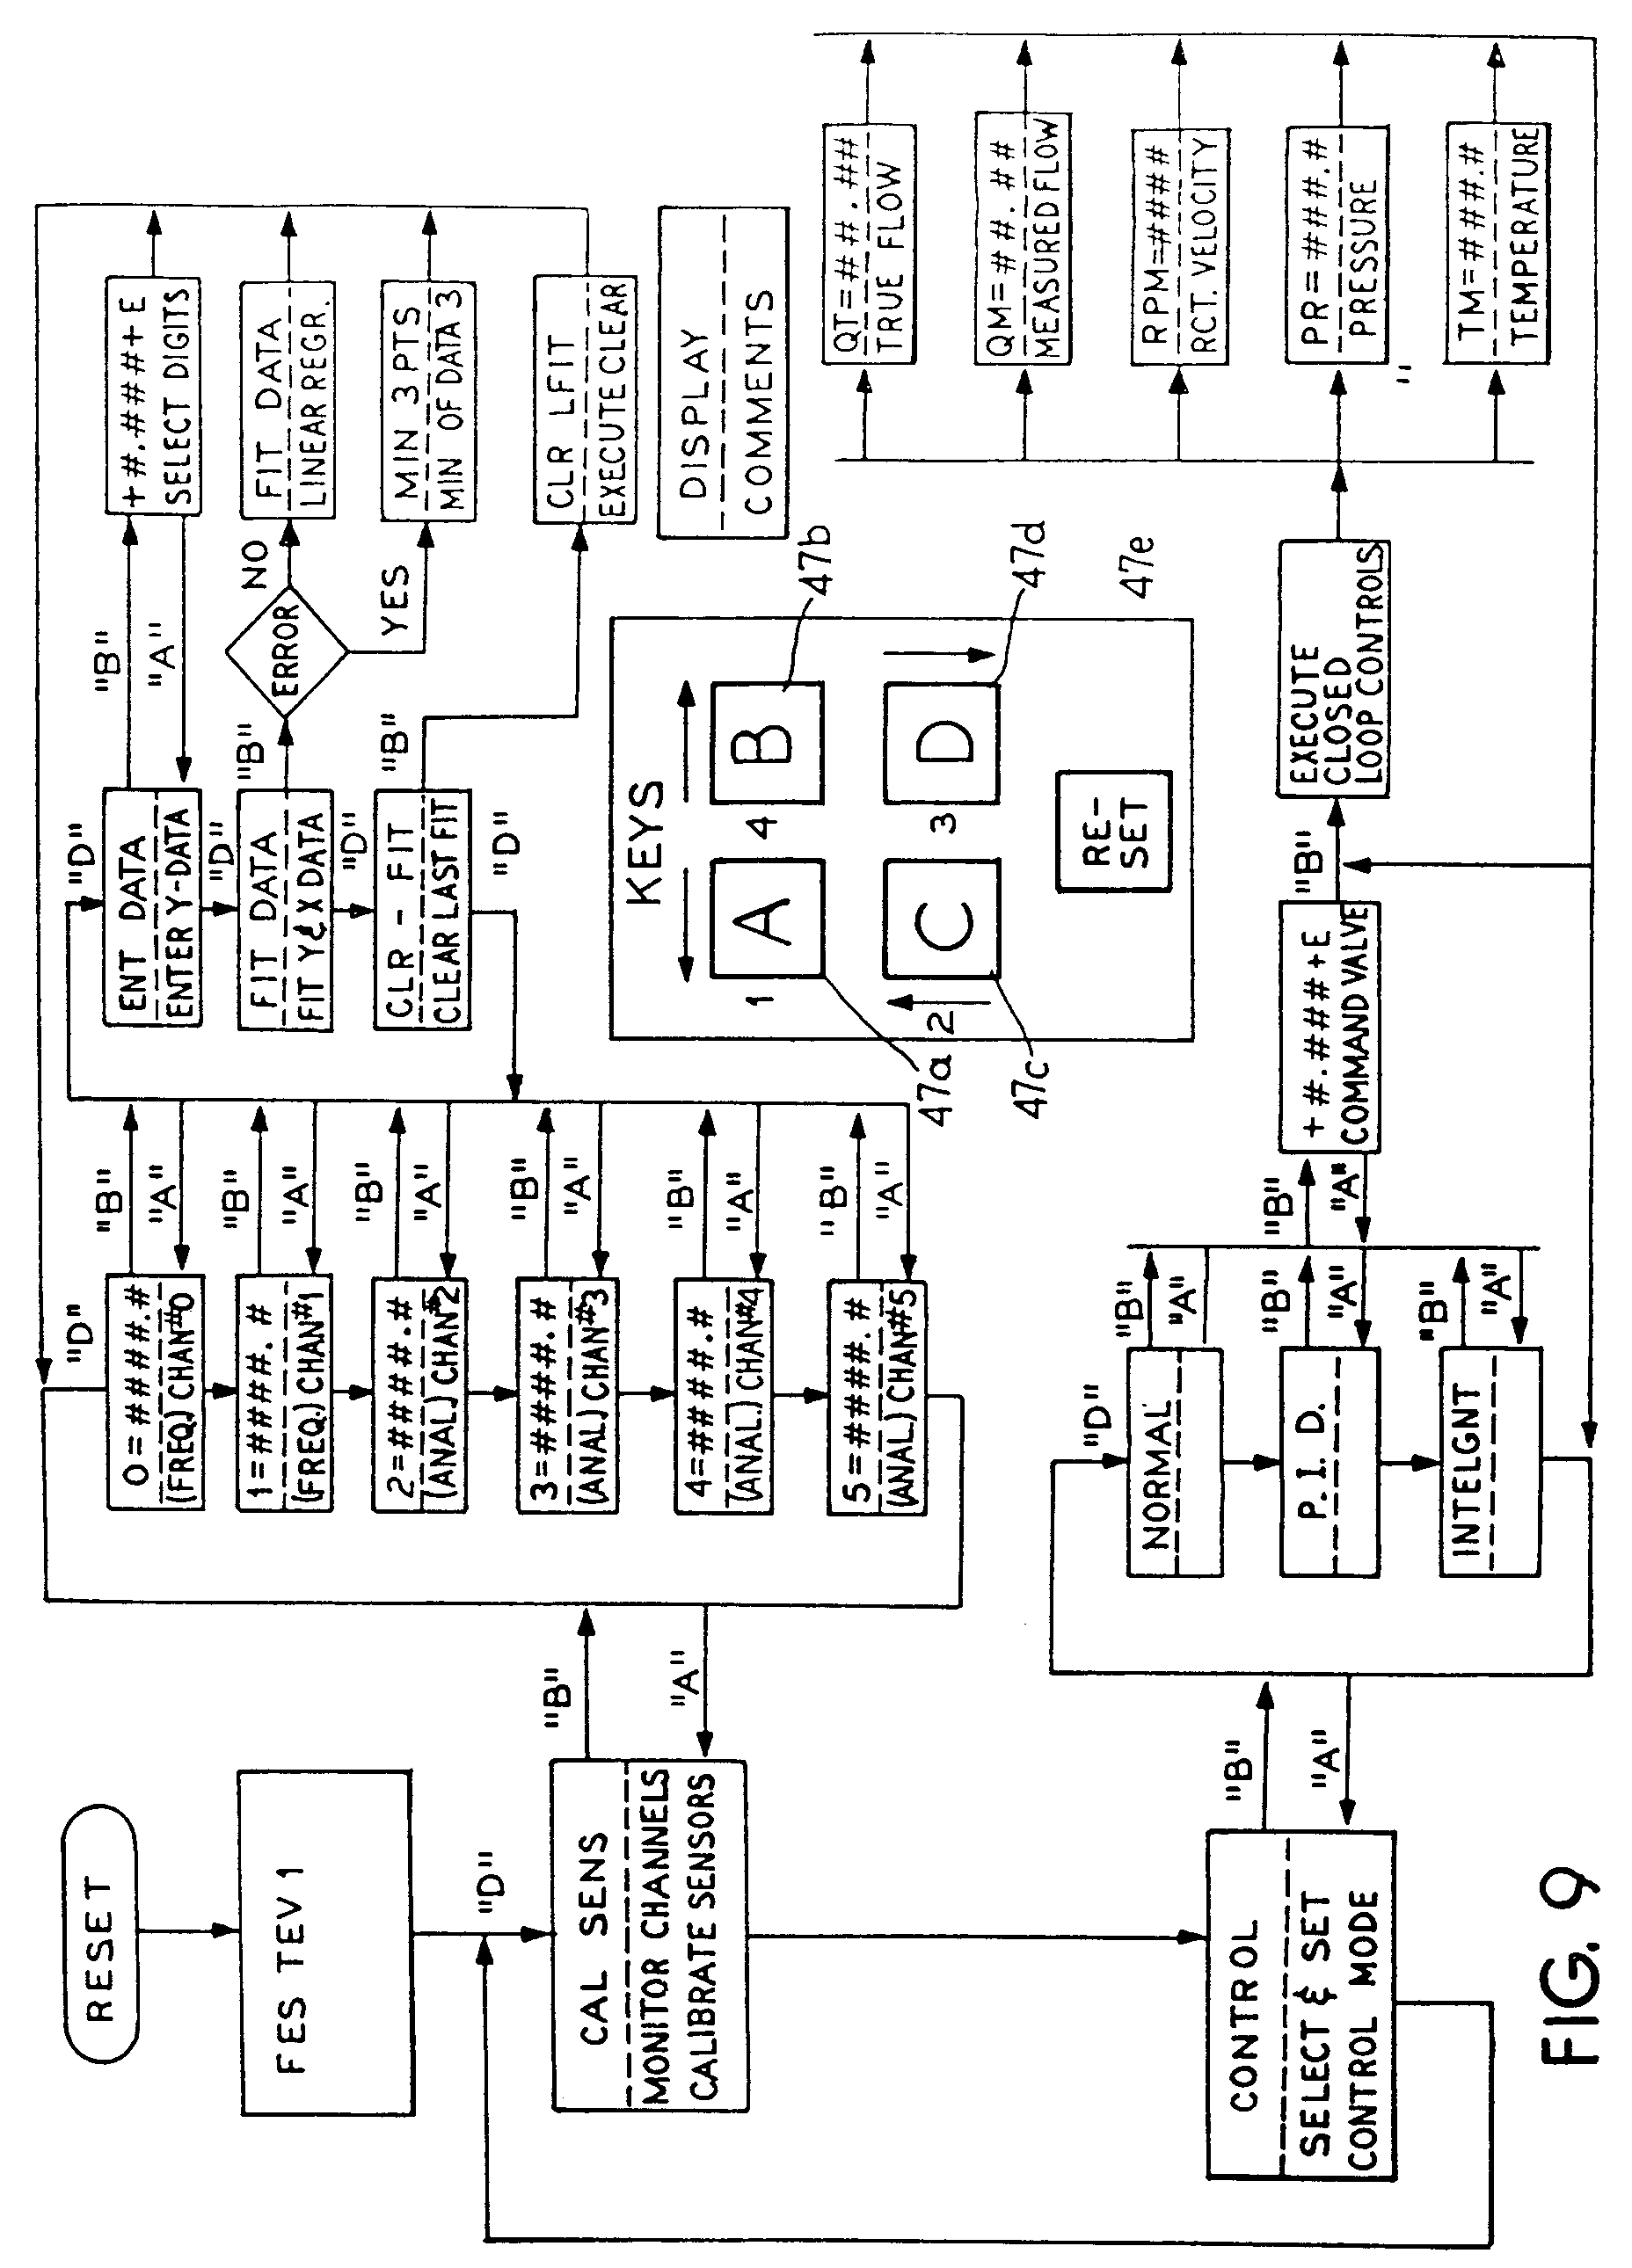 Wiring Diagram For A Dryer together with 245 further 805 in addition Learning Styles in addition 1964 1972 Pontiac Lemans Tempest Gto Flowmaster Exhaust Pipe Kit 17107. on viking flow control